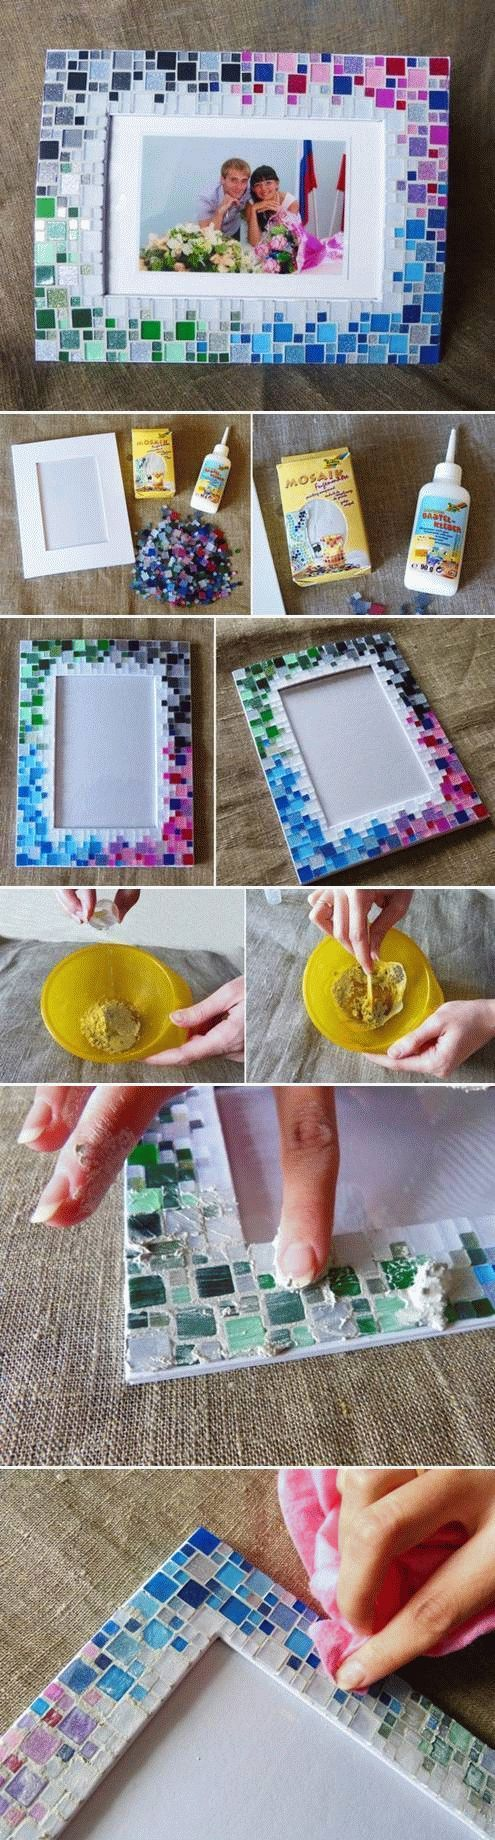 DIY Colorful Mosaic Picture Frame